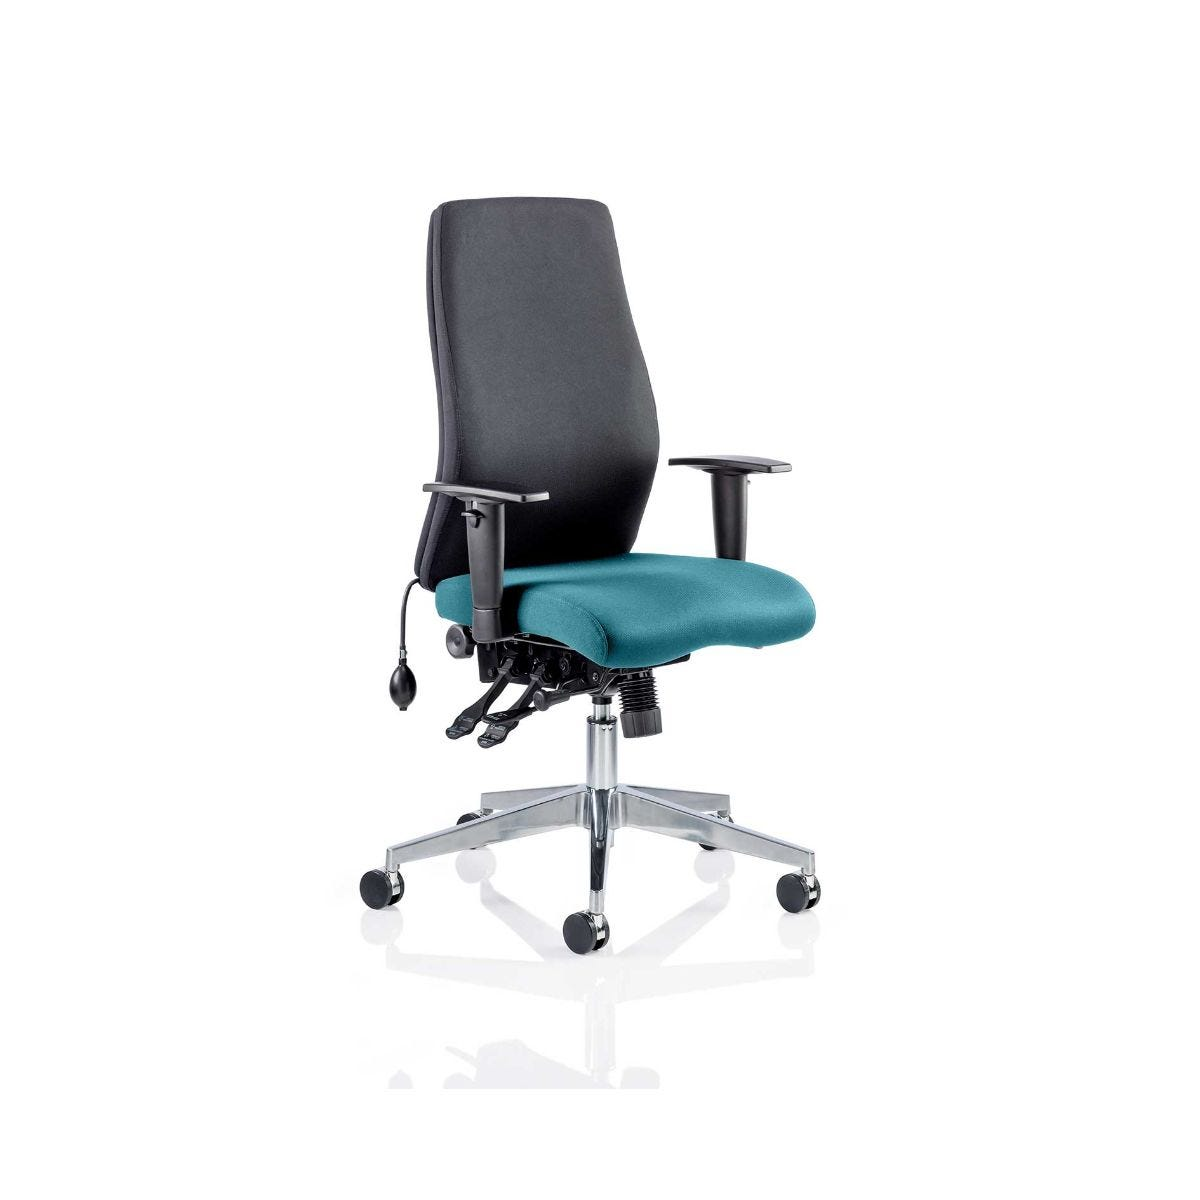 Onyx Office Chair, Kingfisher